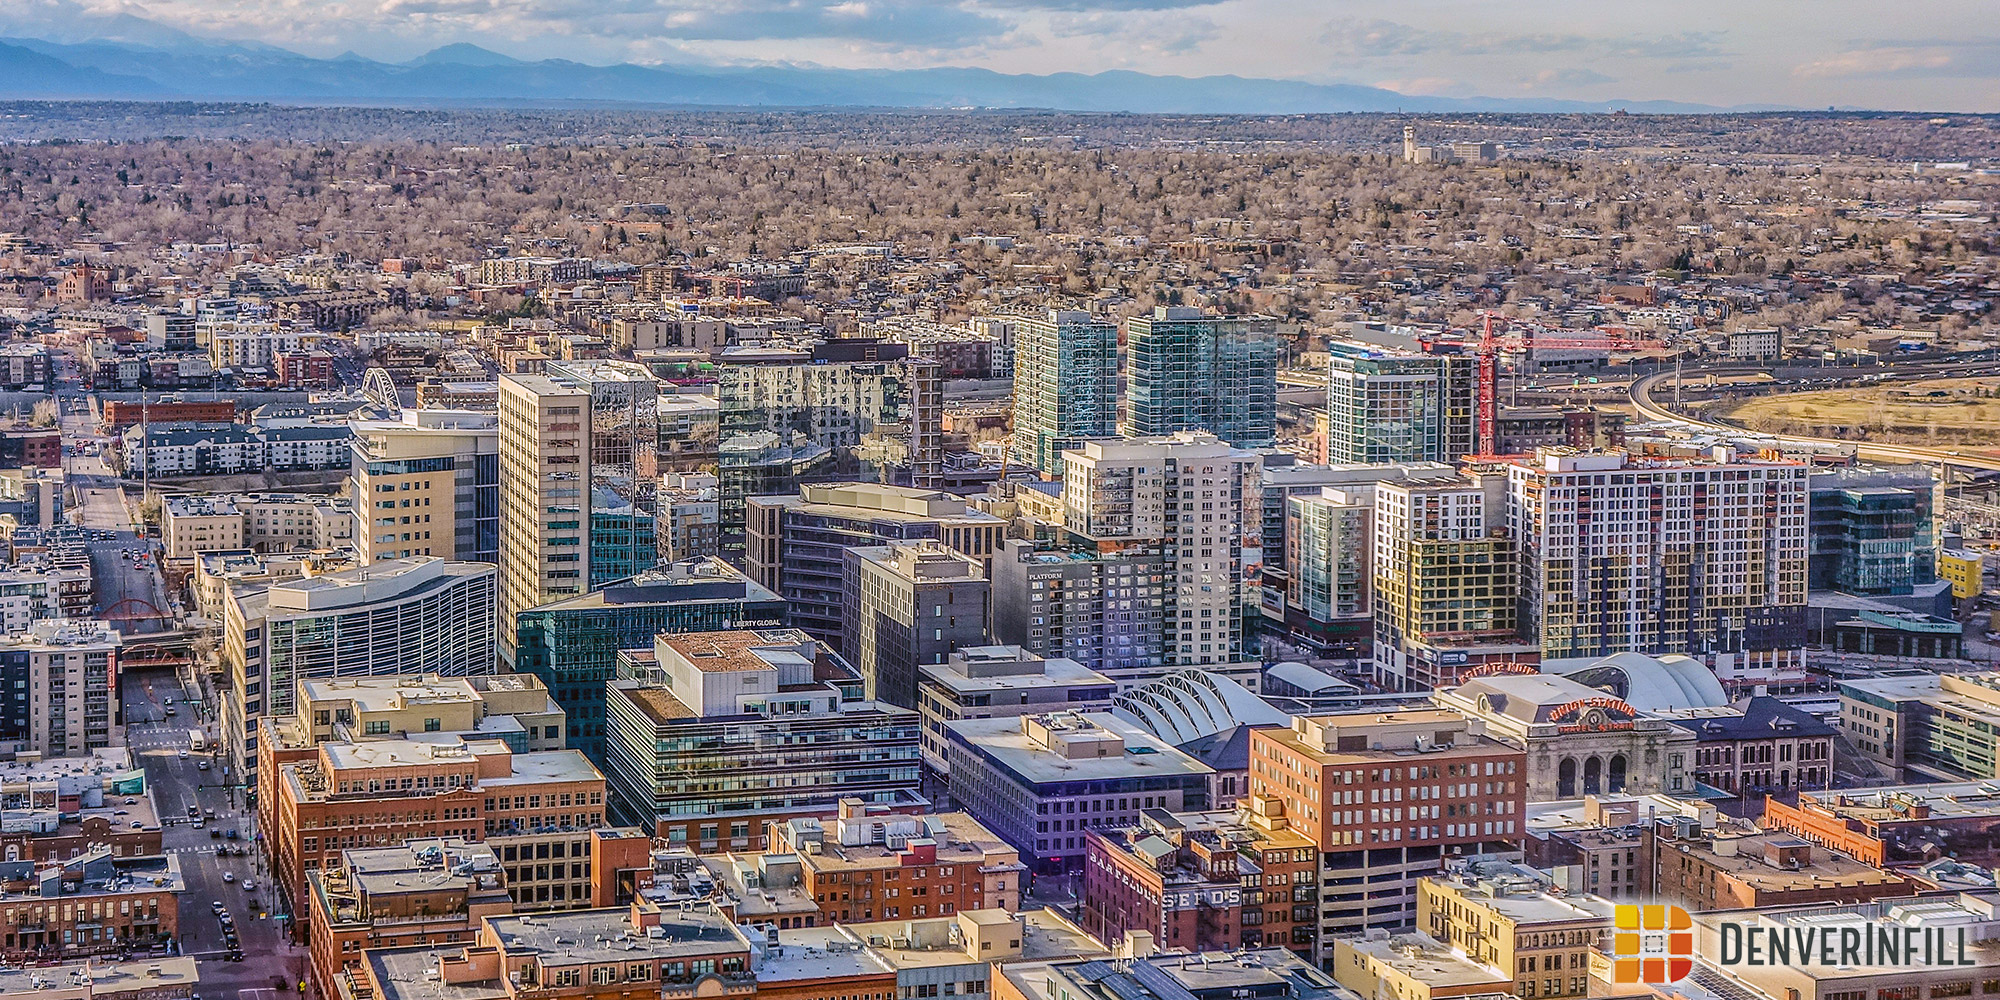 Denver's Union Station district from central downtown, April 2018